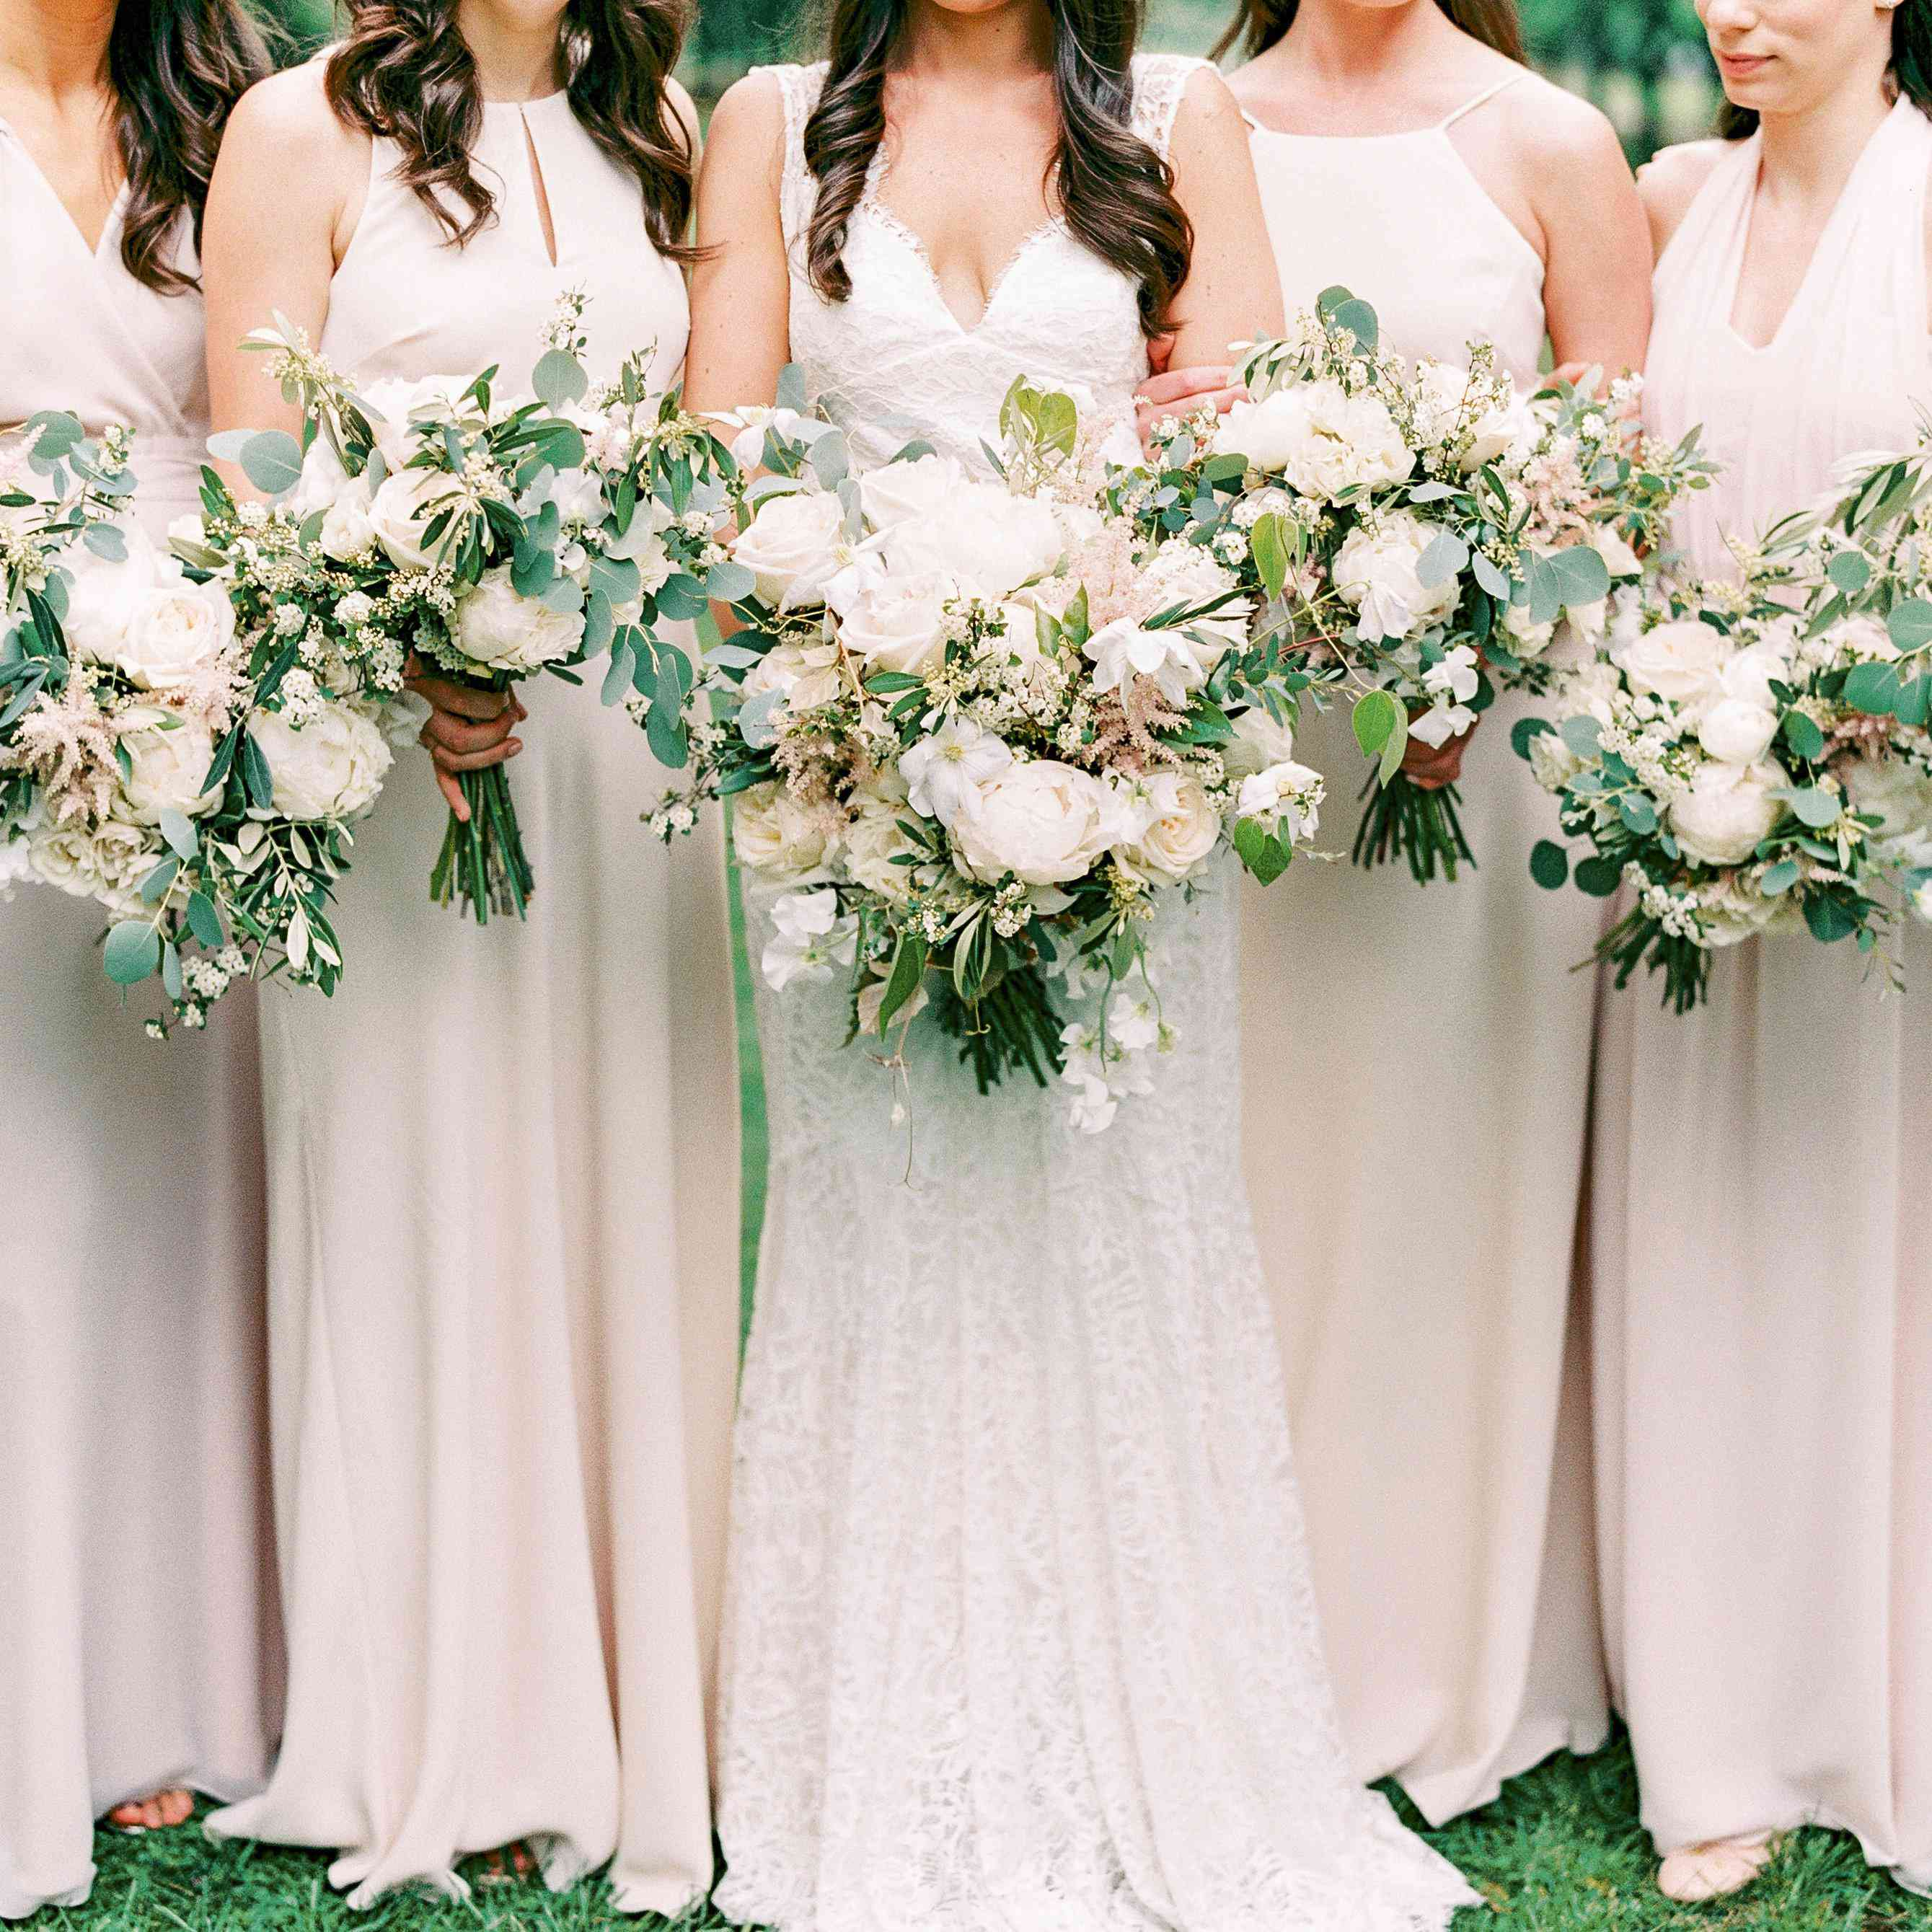 Brides Wedding Flowers: 25 Wedding Bouquets Full Of Fresh And Fragrant Herbs